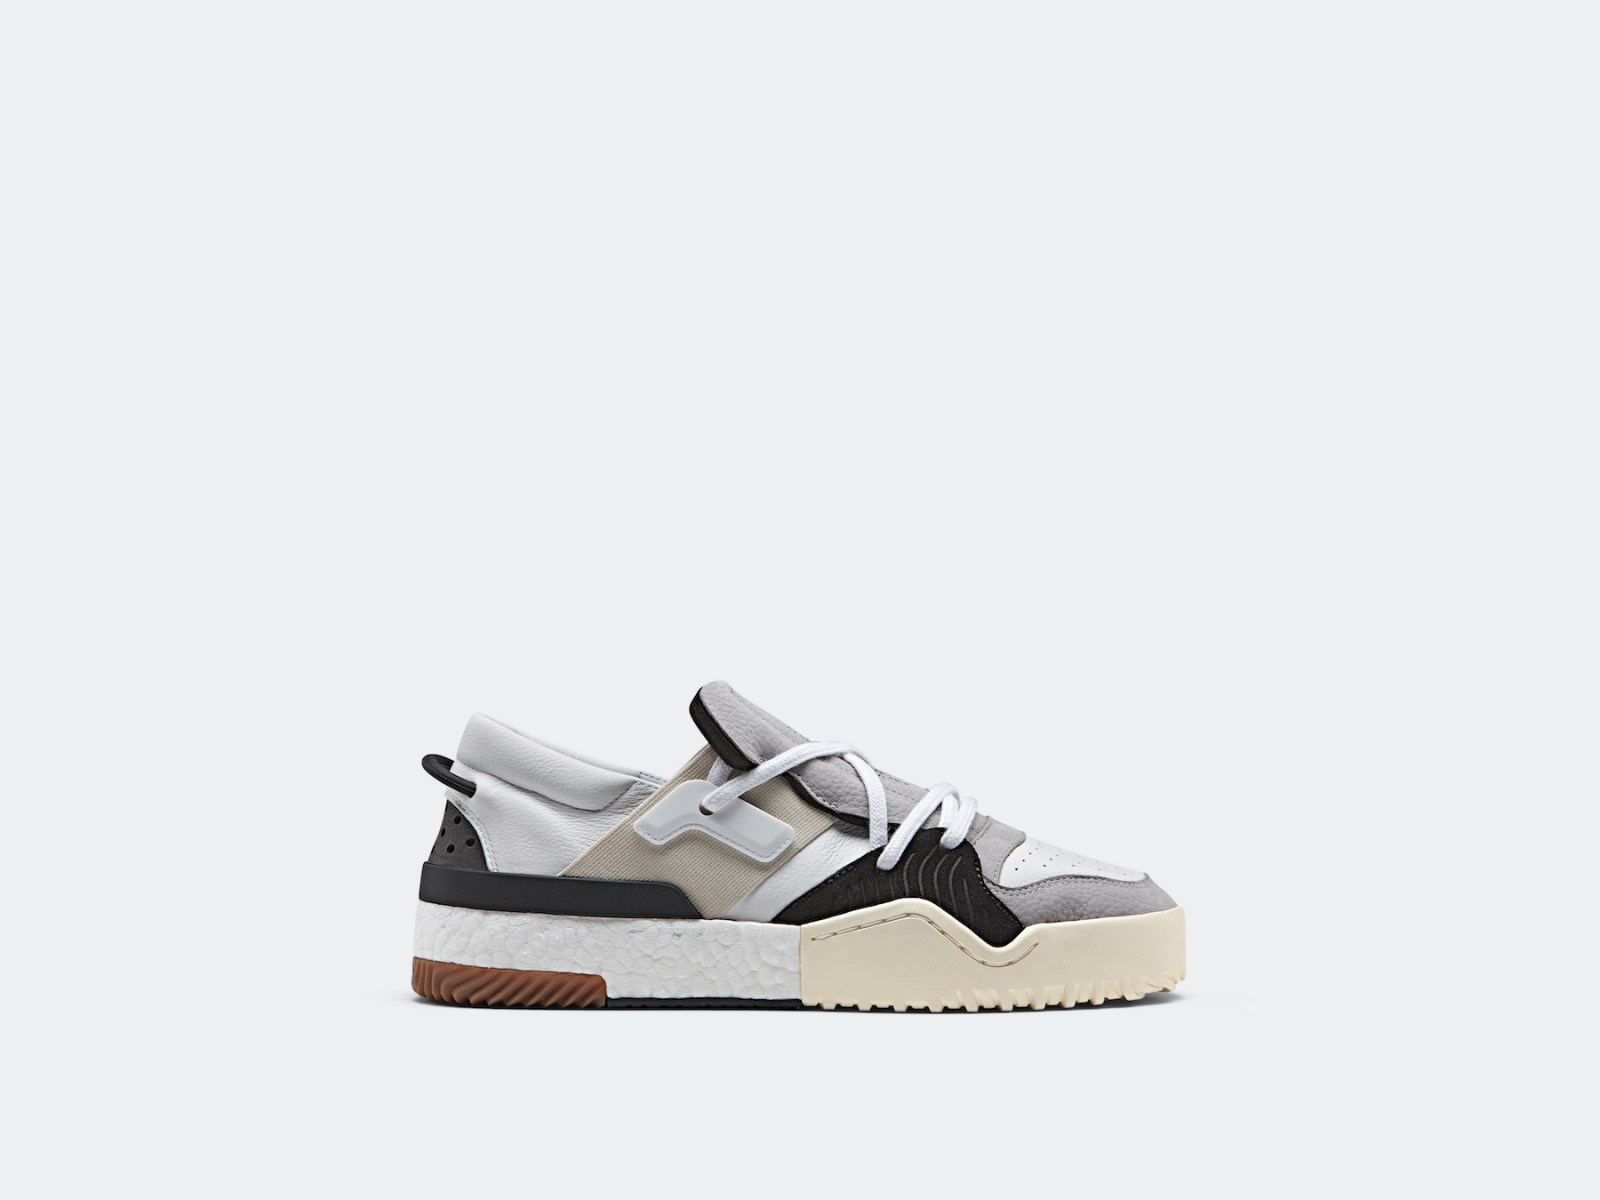 promo code fc06d d2256 ... Drop 2 adidas Originals by Alexander Wang 聯名系列Season 2 第三波新作正式發佈 ...